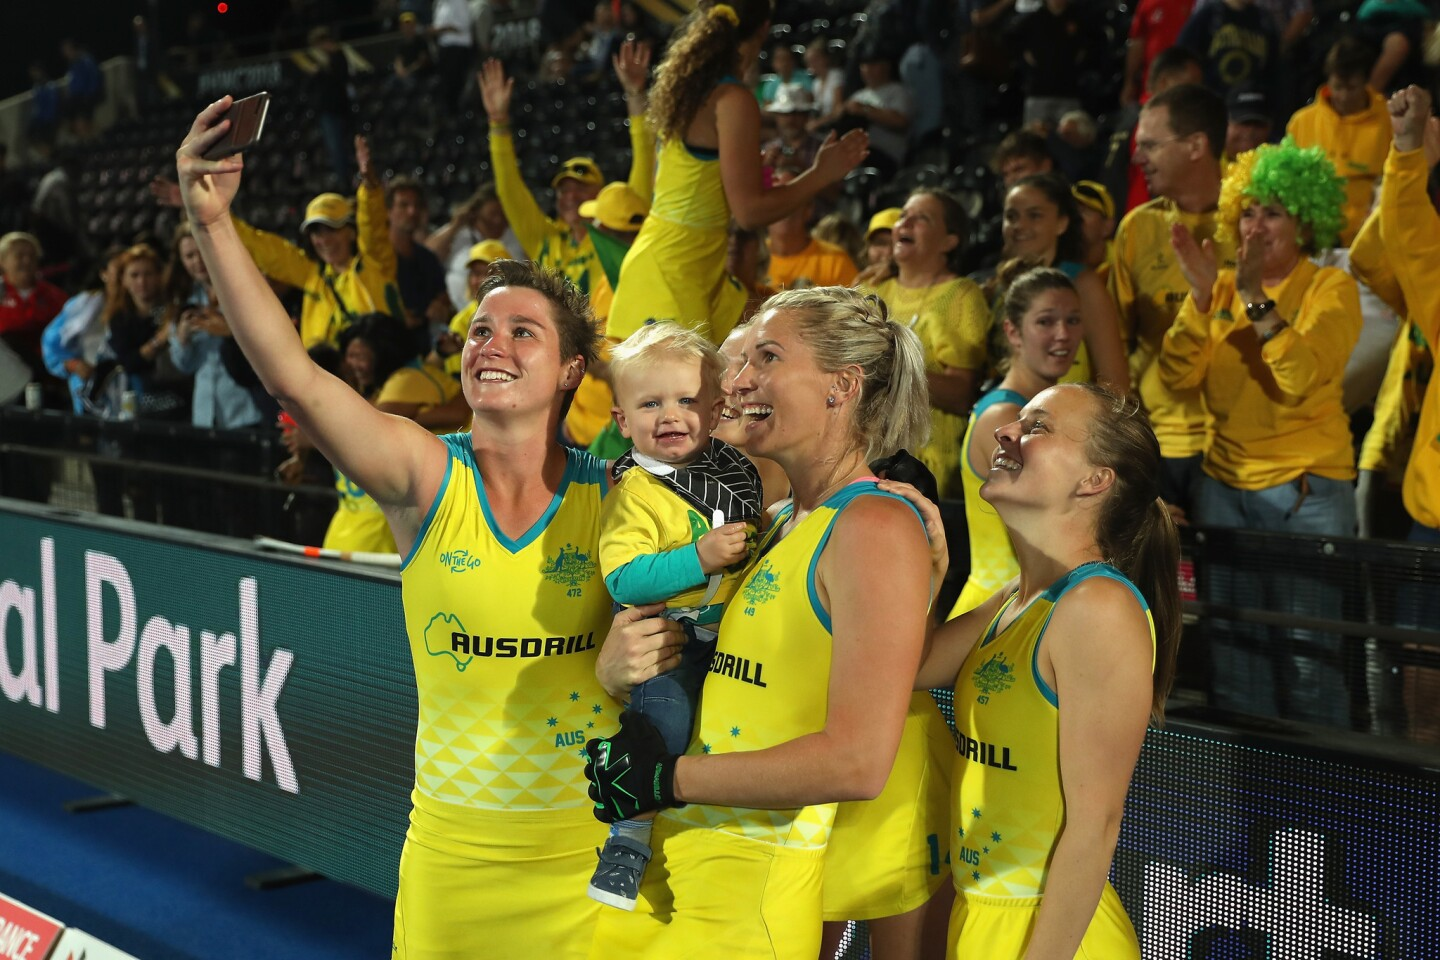 LONDON, ENGLAND - AUGUST 01: Kathryn Slattery of Australia, Jodie Kenny of Australia and Emily Smith of Australia pose for a selfie with family members after their victory during the Quarter Final game between Australia and Argentina of the FIH Womens Hockey World Cup at Lee Valley Hockey and Tennis Centre on August 1, 2018 in London, England. (Photo by Christopher Lee/Getty Images) ** OUTS - ELSENT, FPG, CM - OUTS * NM, PH, VA if sourced by CT, LA or MoD **